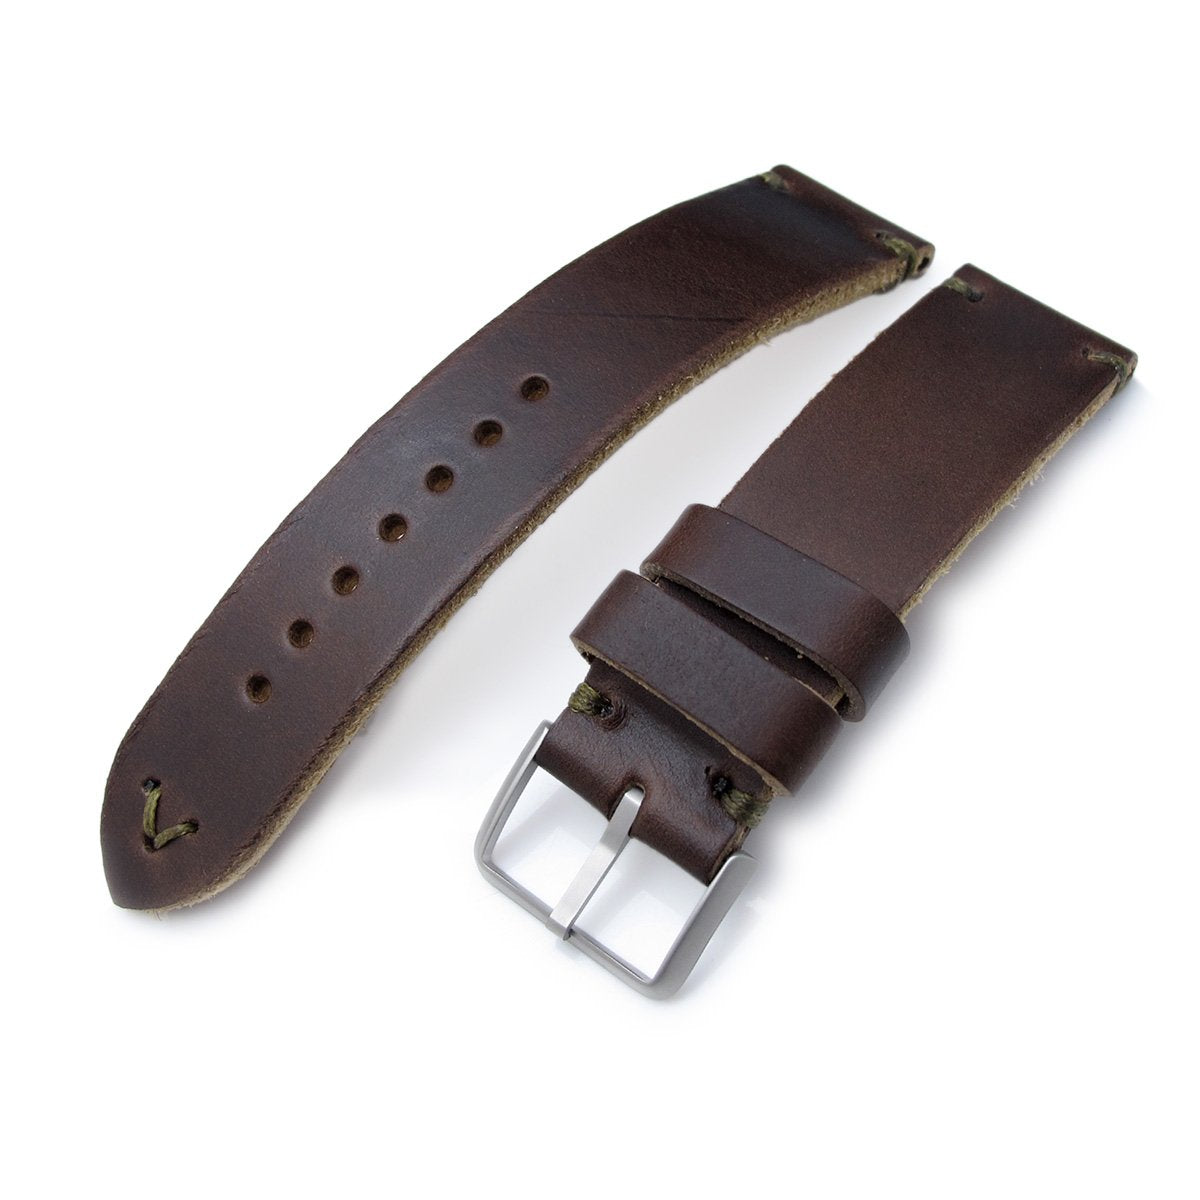 20mm 22mm MiLTAT Horween Chromexcel Watch Strap Matte Brown Military Green Stitching Strapcode Watch Bands